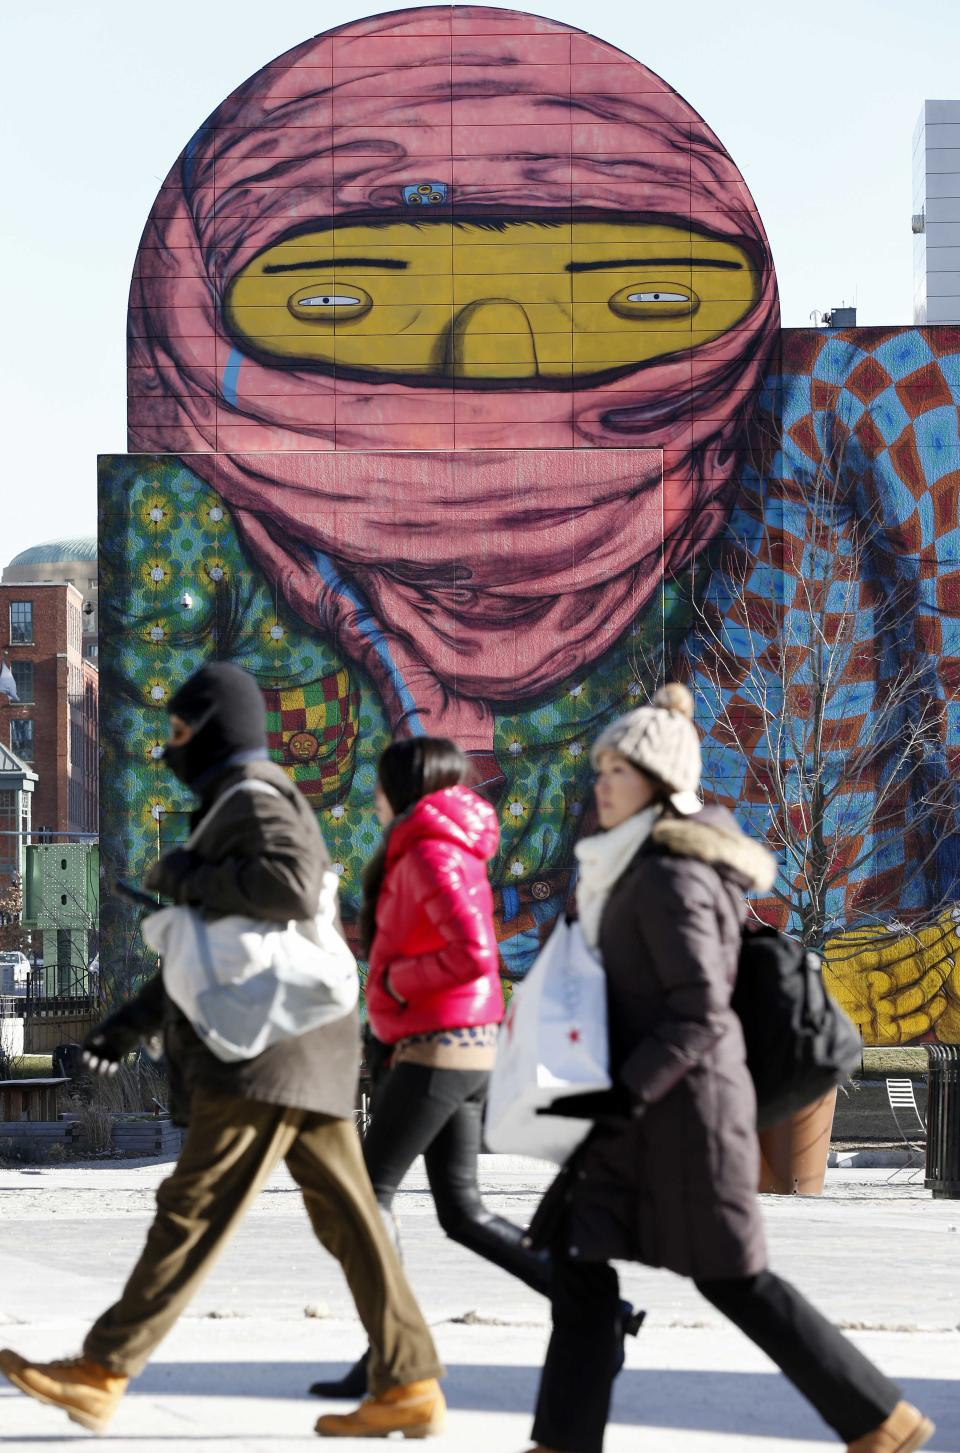 People walk past a mural painted on the side of a building in Boston, Wednesday, Jan. 23, 2013.  The National Weather Service says it's not expected to get above 17 degrees in Boston, with the wind chill making it feel five below.  (AP Photo/Michael Dwyer)